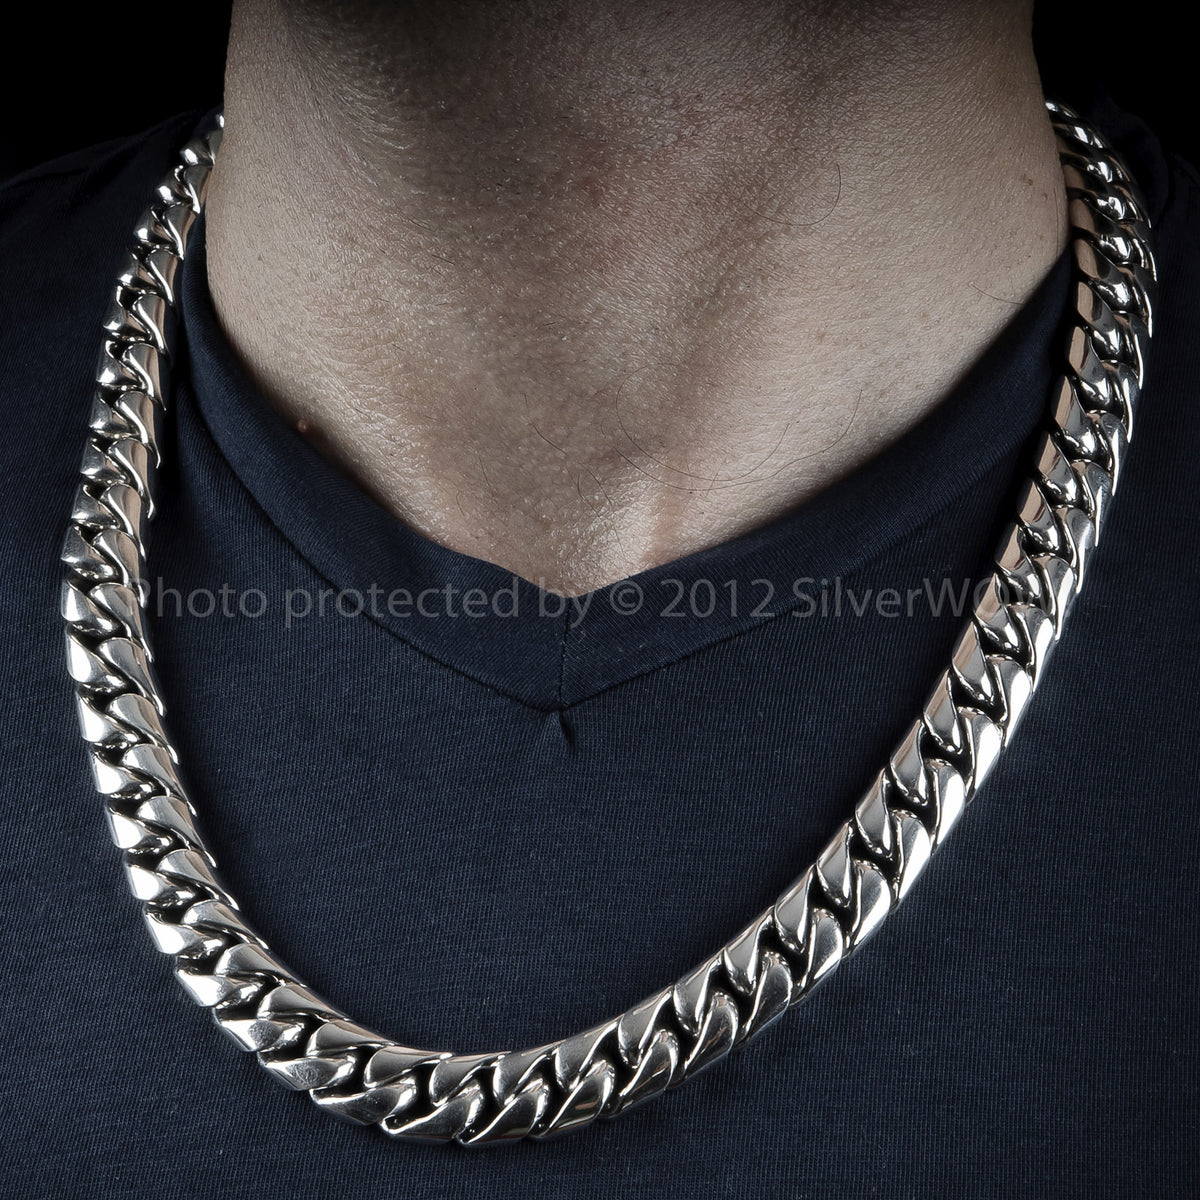 Silver Cuban Link Necklace 15mm Wide Silverwow Net